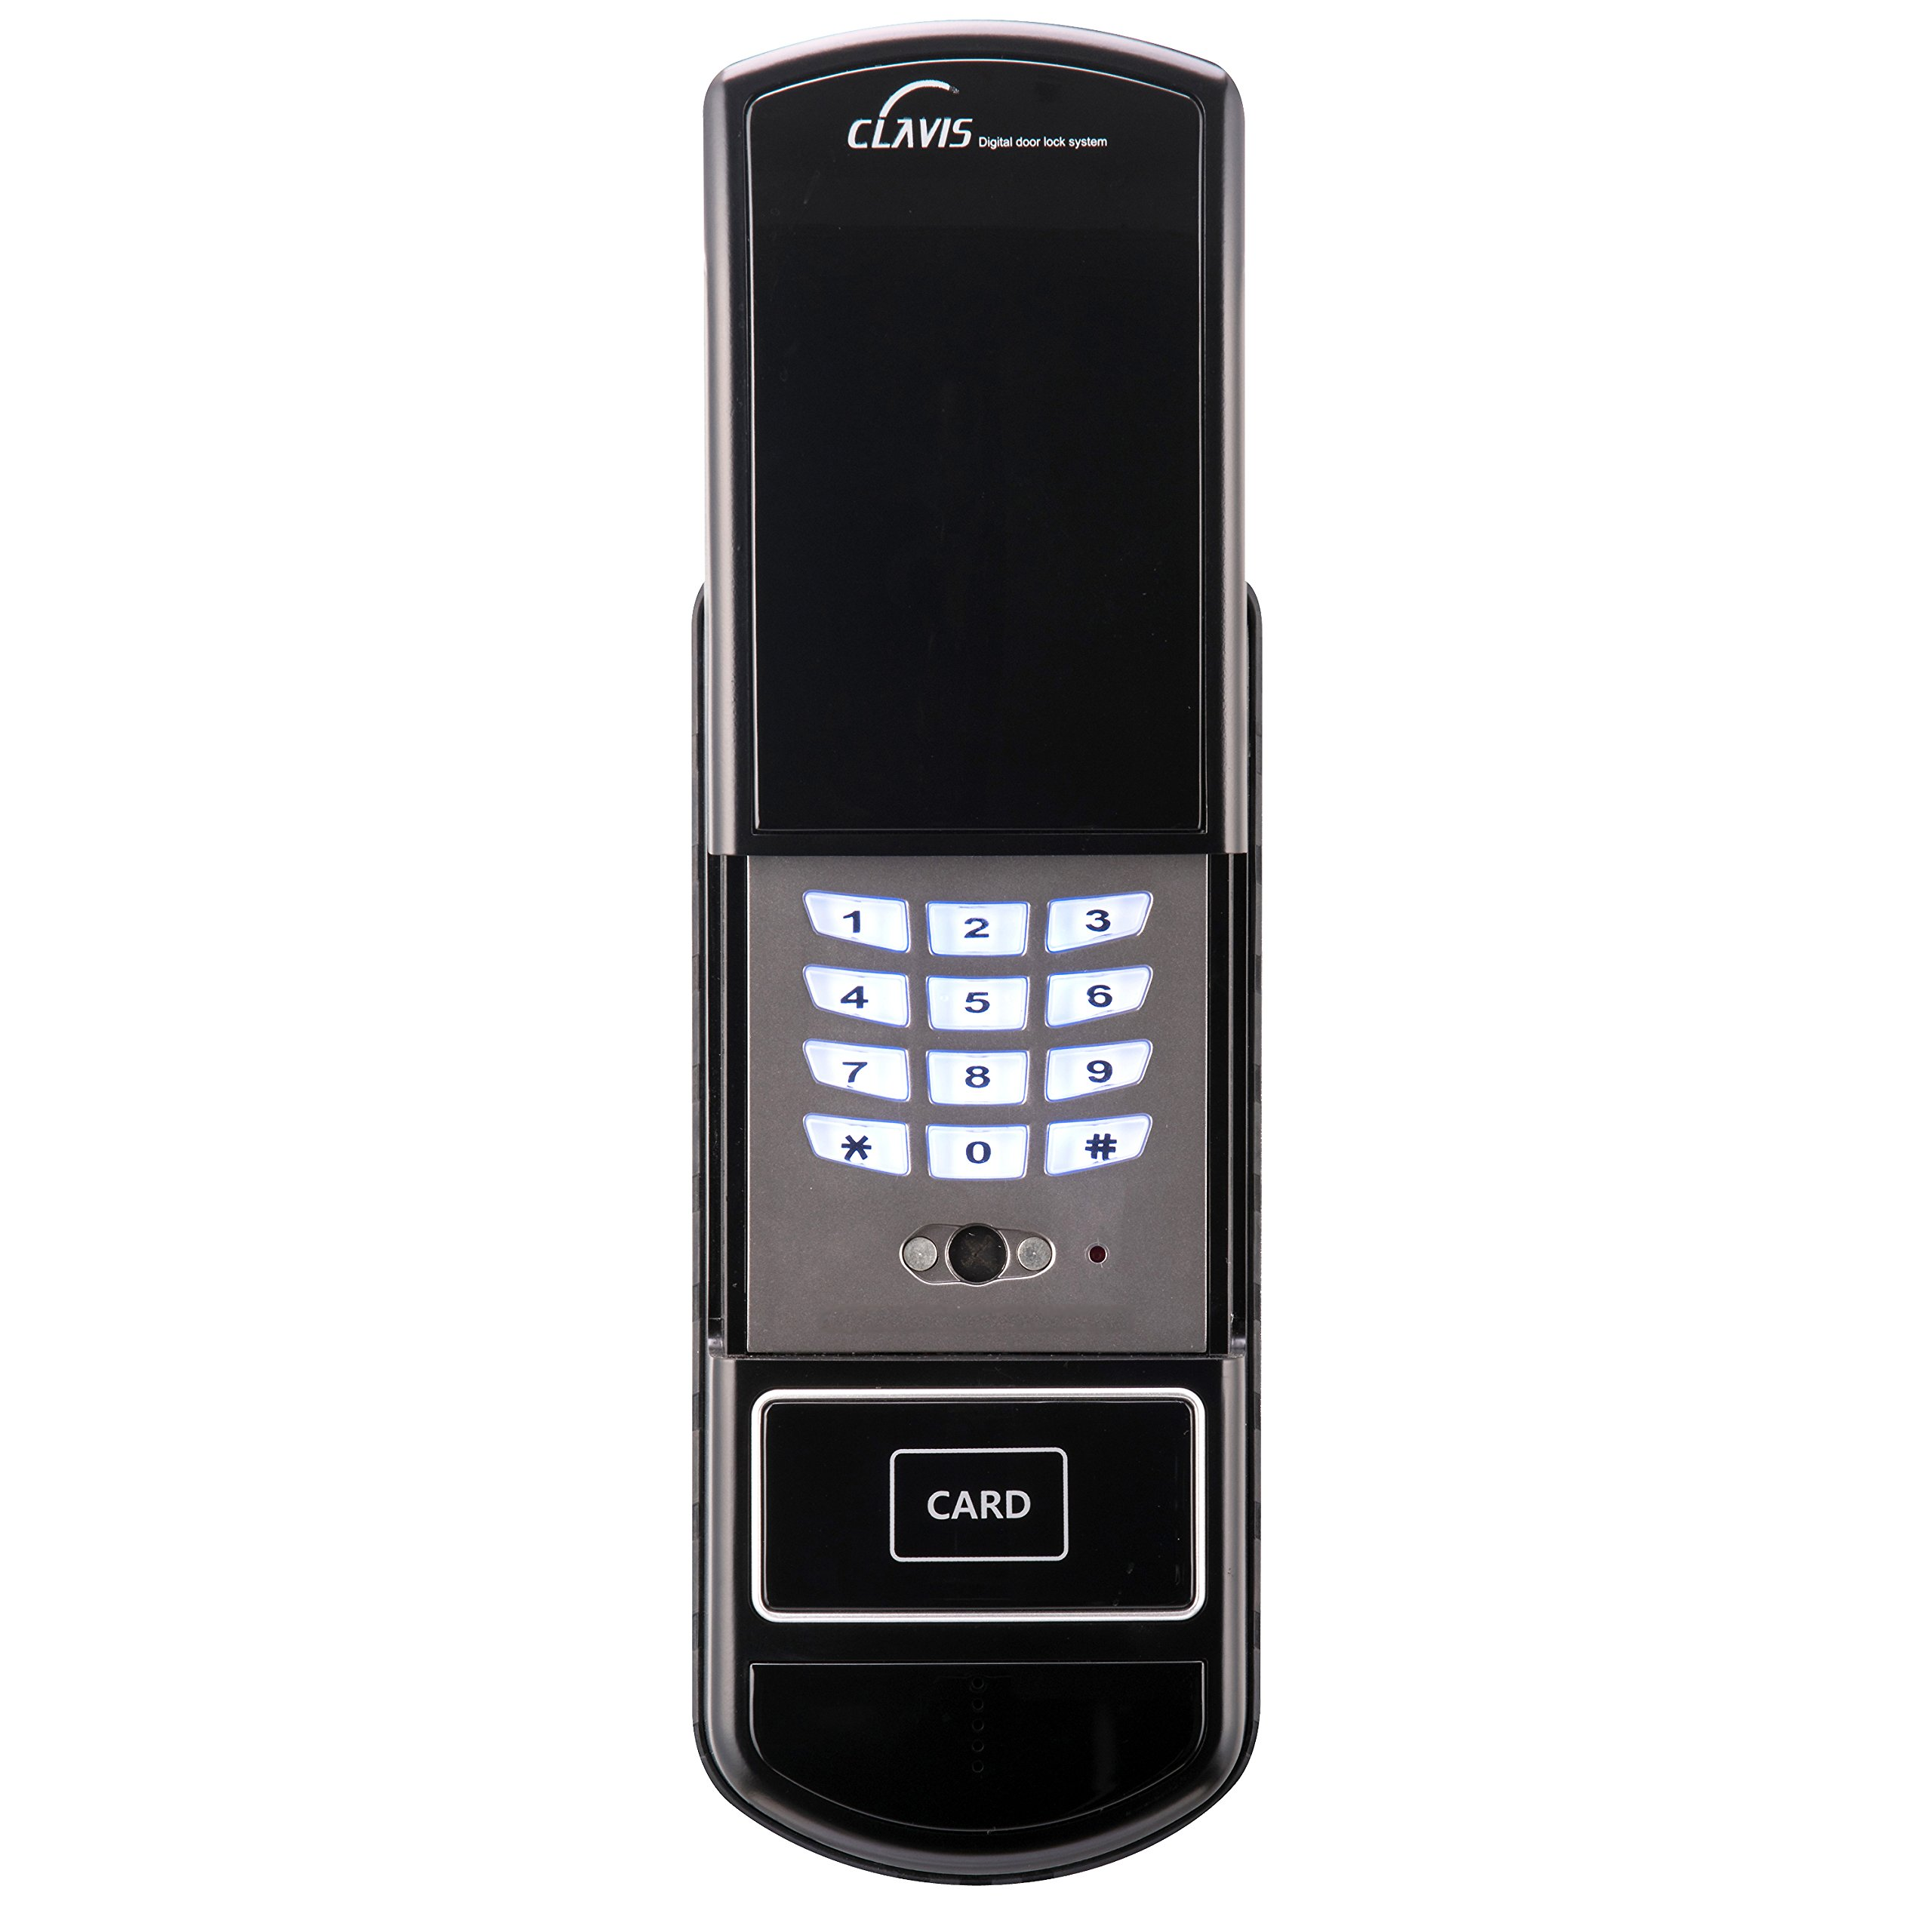 HSI LV-300BK Smart Digital Door Lock-Wireless Home Entry with Your Card Key, Black